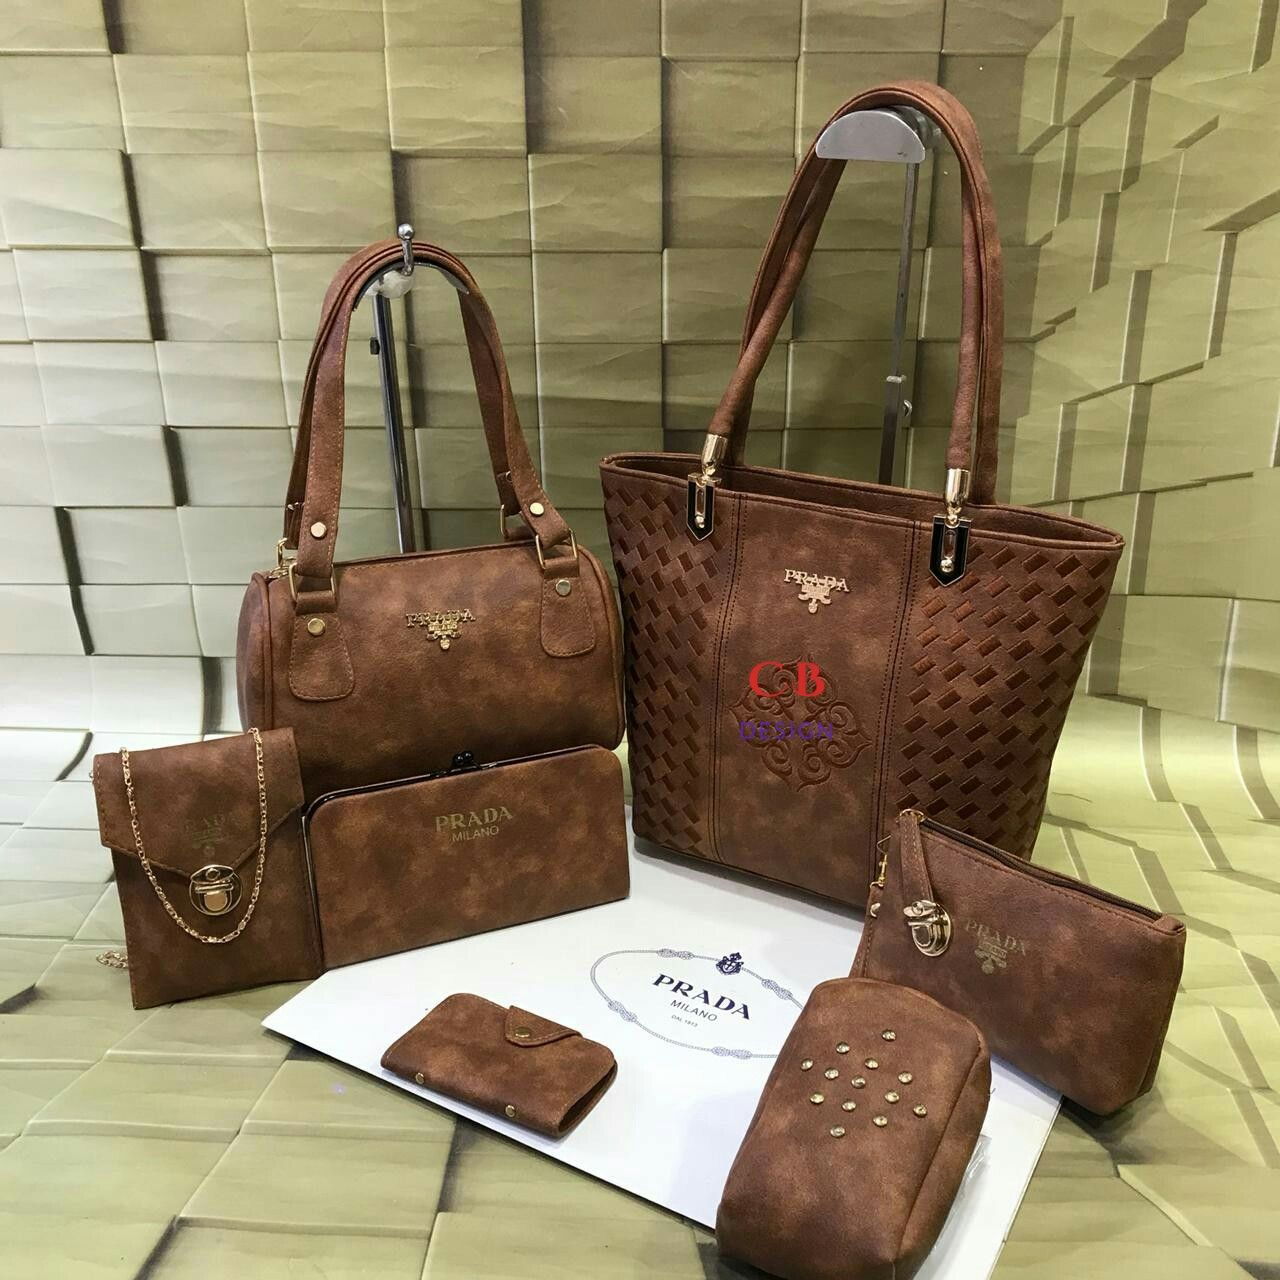 Pin by Manisha goyal on Accessories And Extras | Louis vuitton bag  neverfull, Prada, Tote